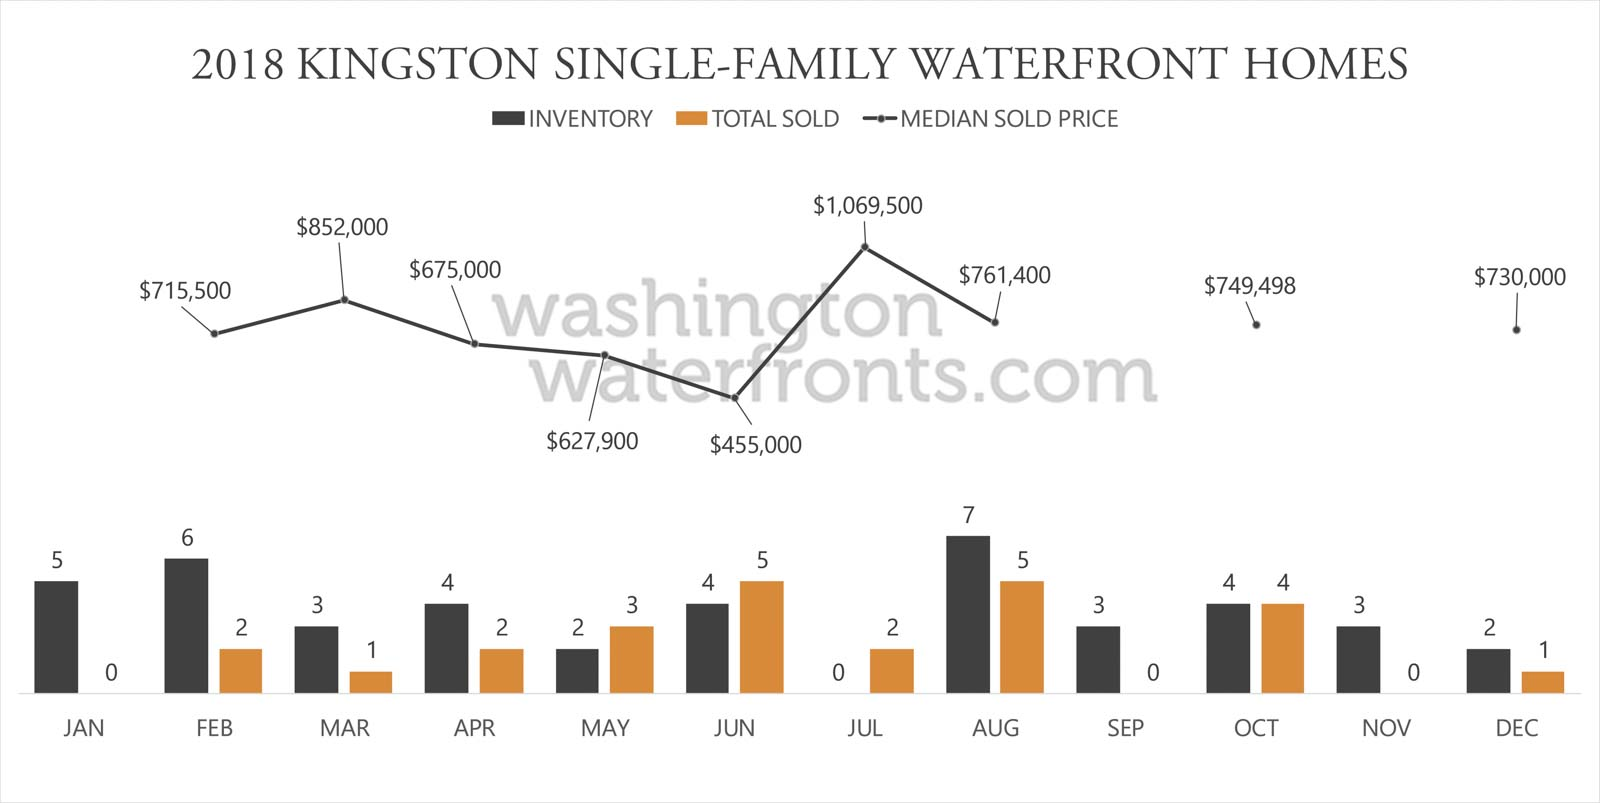 Kingston Waterfront Inventory